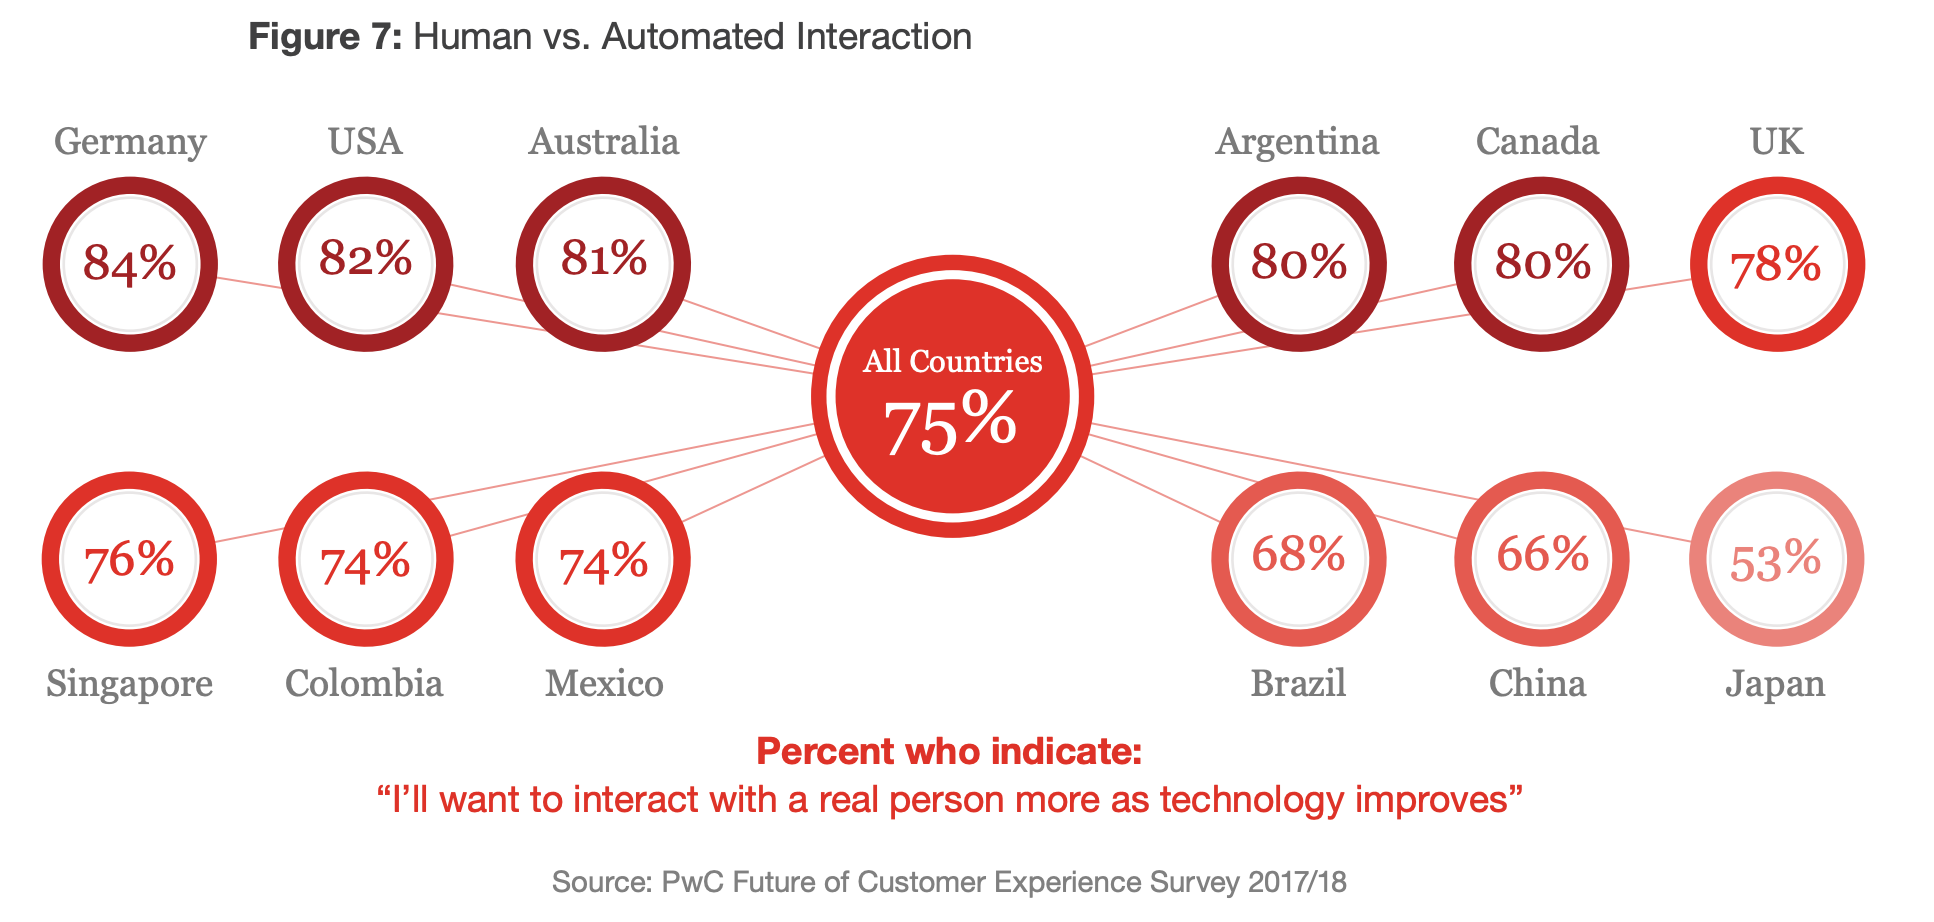 82% of Americans want to interact with a human more as technology improves - PwC - The Basis Point